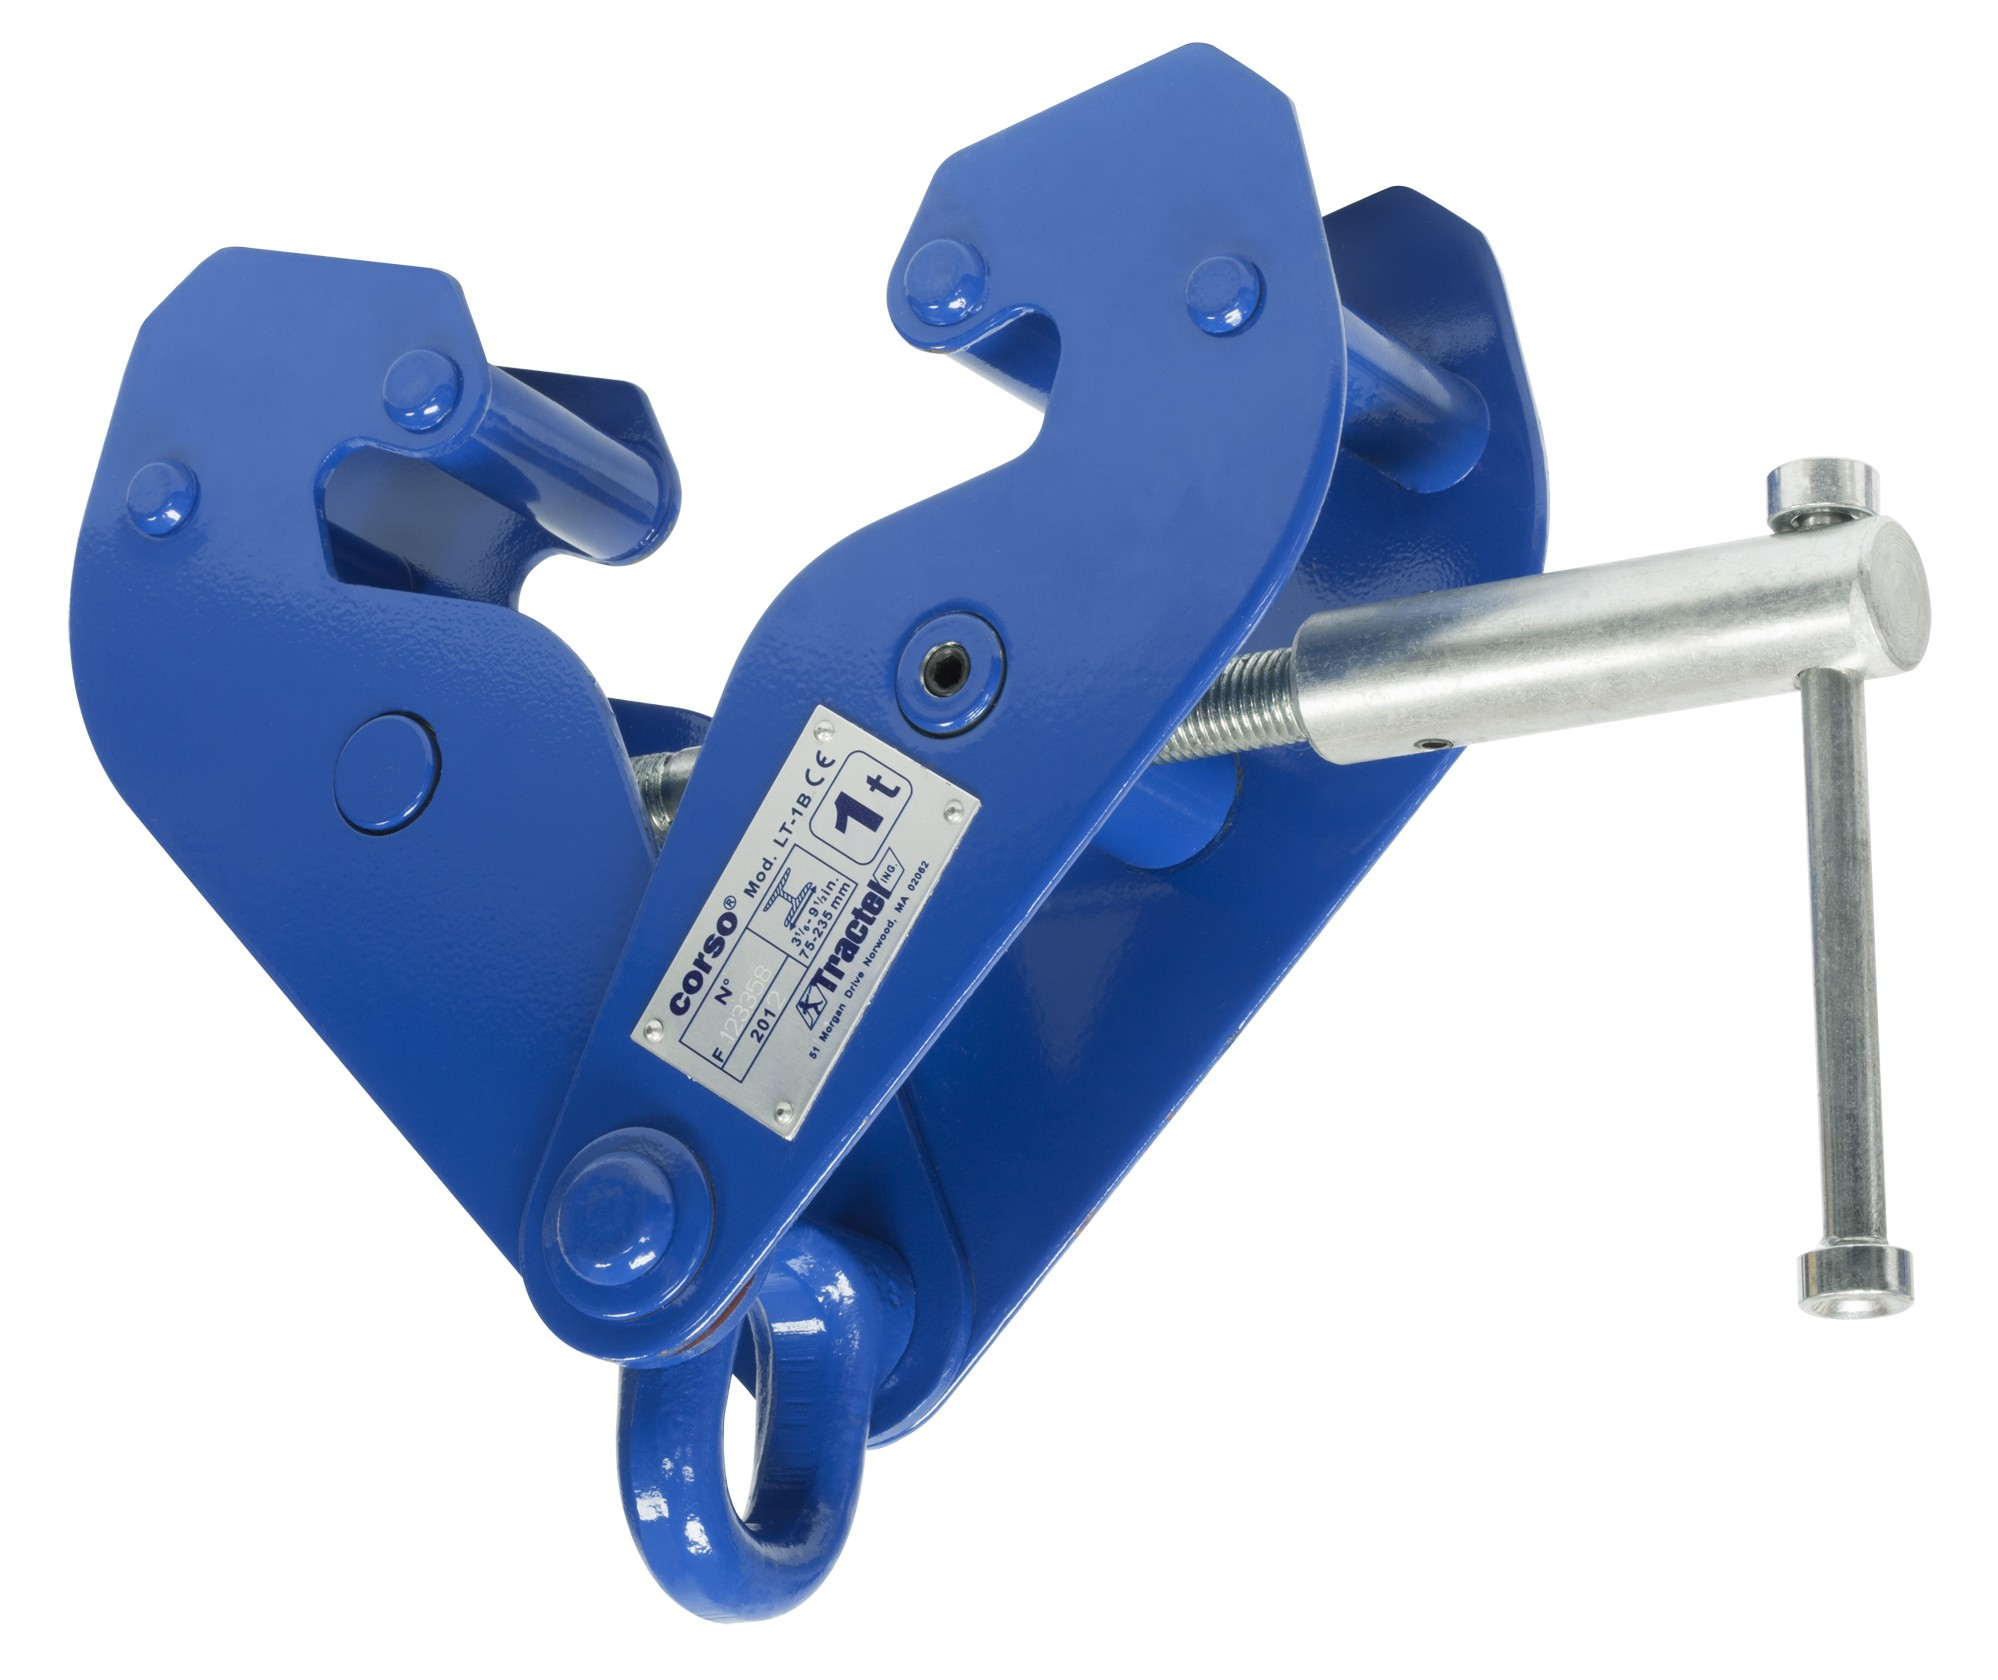 TRACTEL BEAM CLAMP: 5 TON BEAM CLAMP w/LIFTING EYE